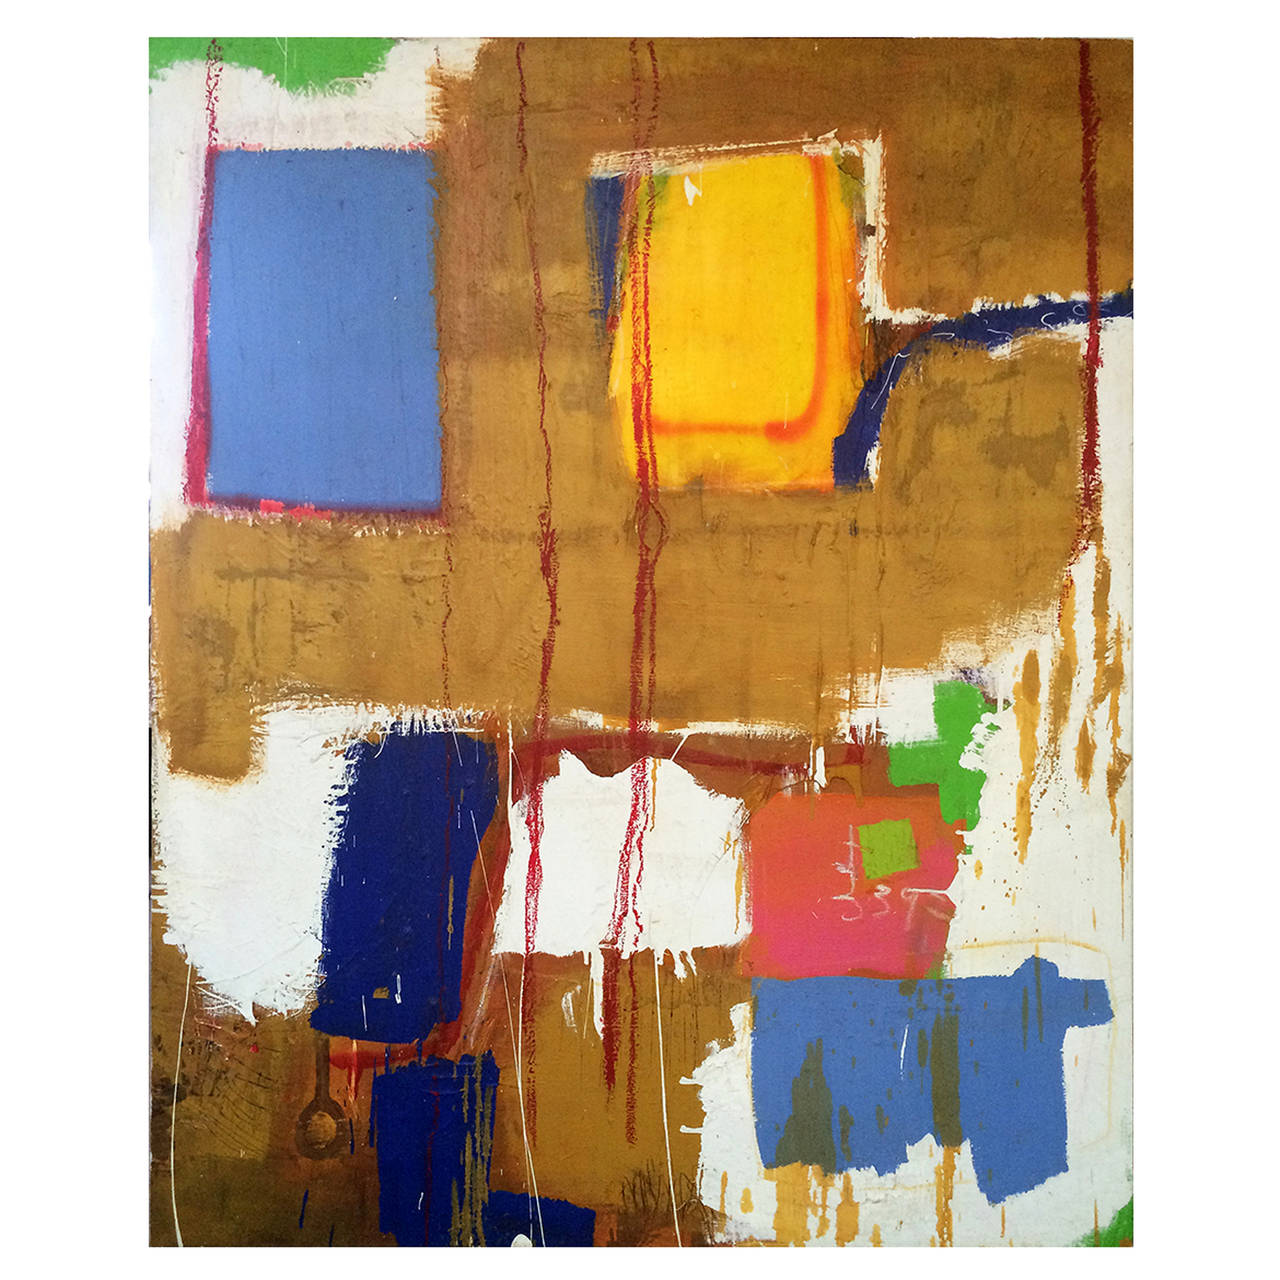 Colorful Abstract Painting by John Luckett